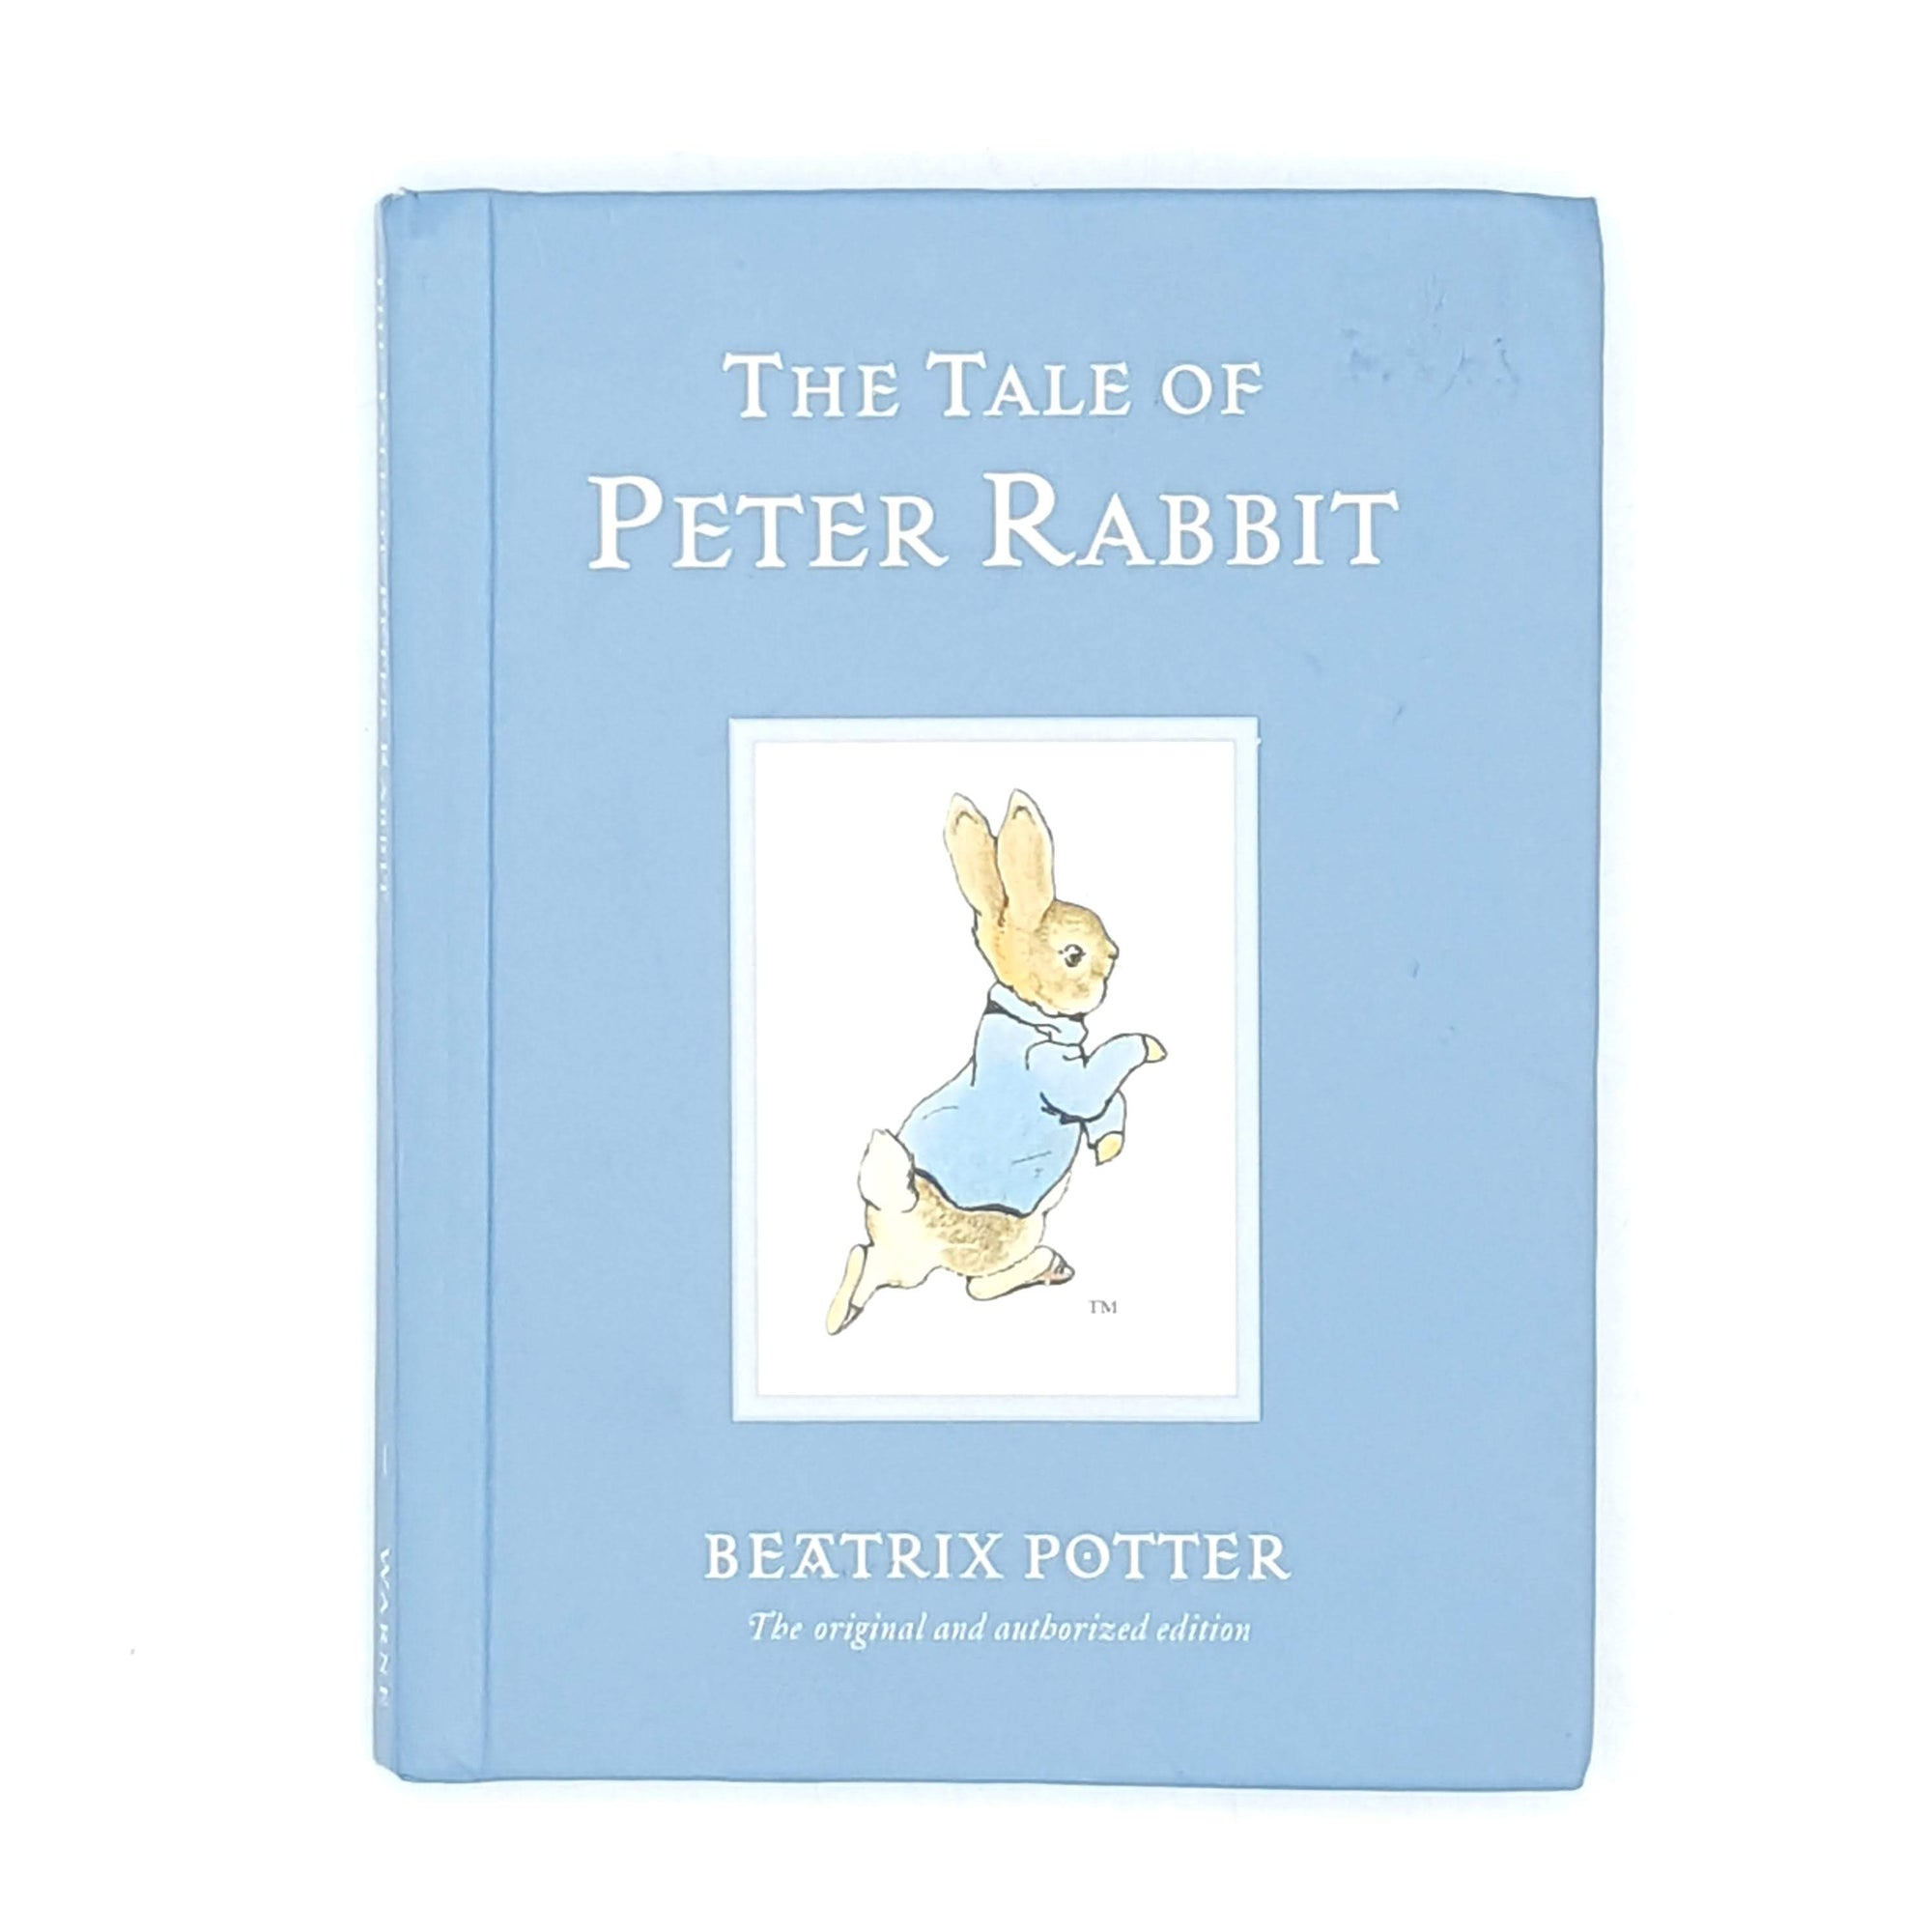 decorative-beatrix-potter-country-house-library-blue-old-vintage-thrift-antique-childrens-peter-rabbit-patterned-books-classic-